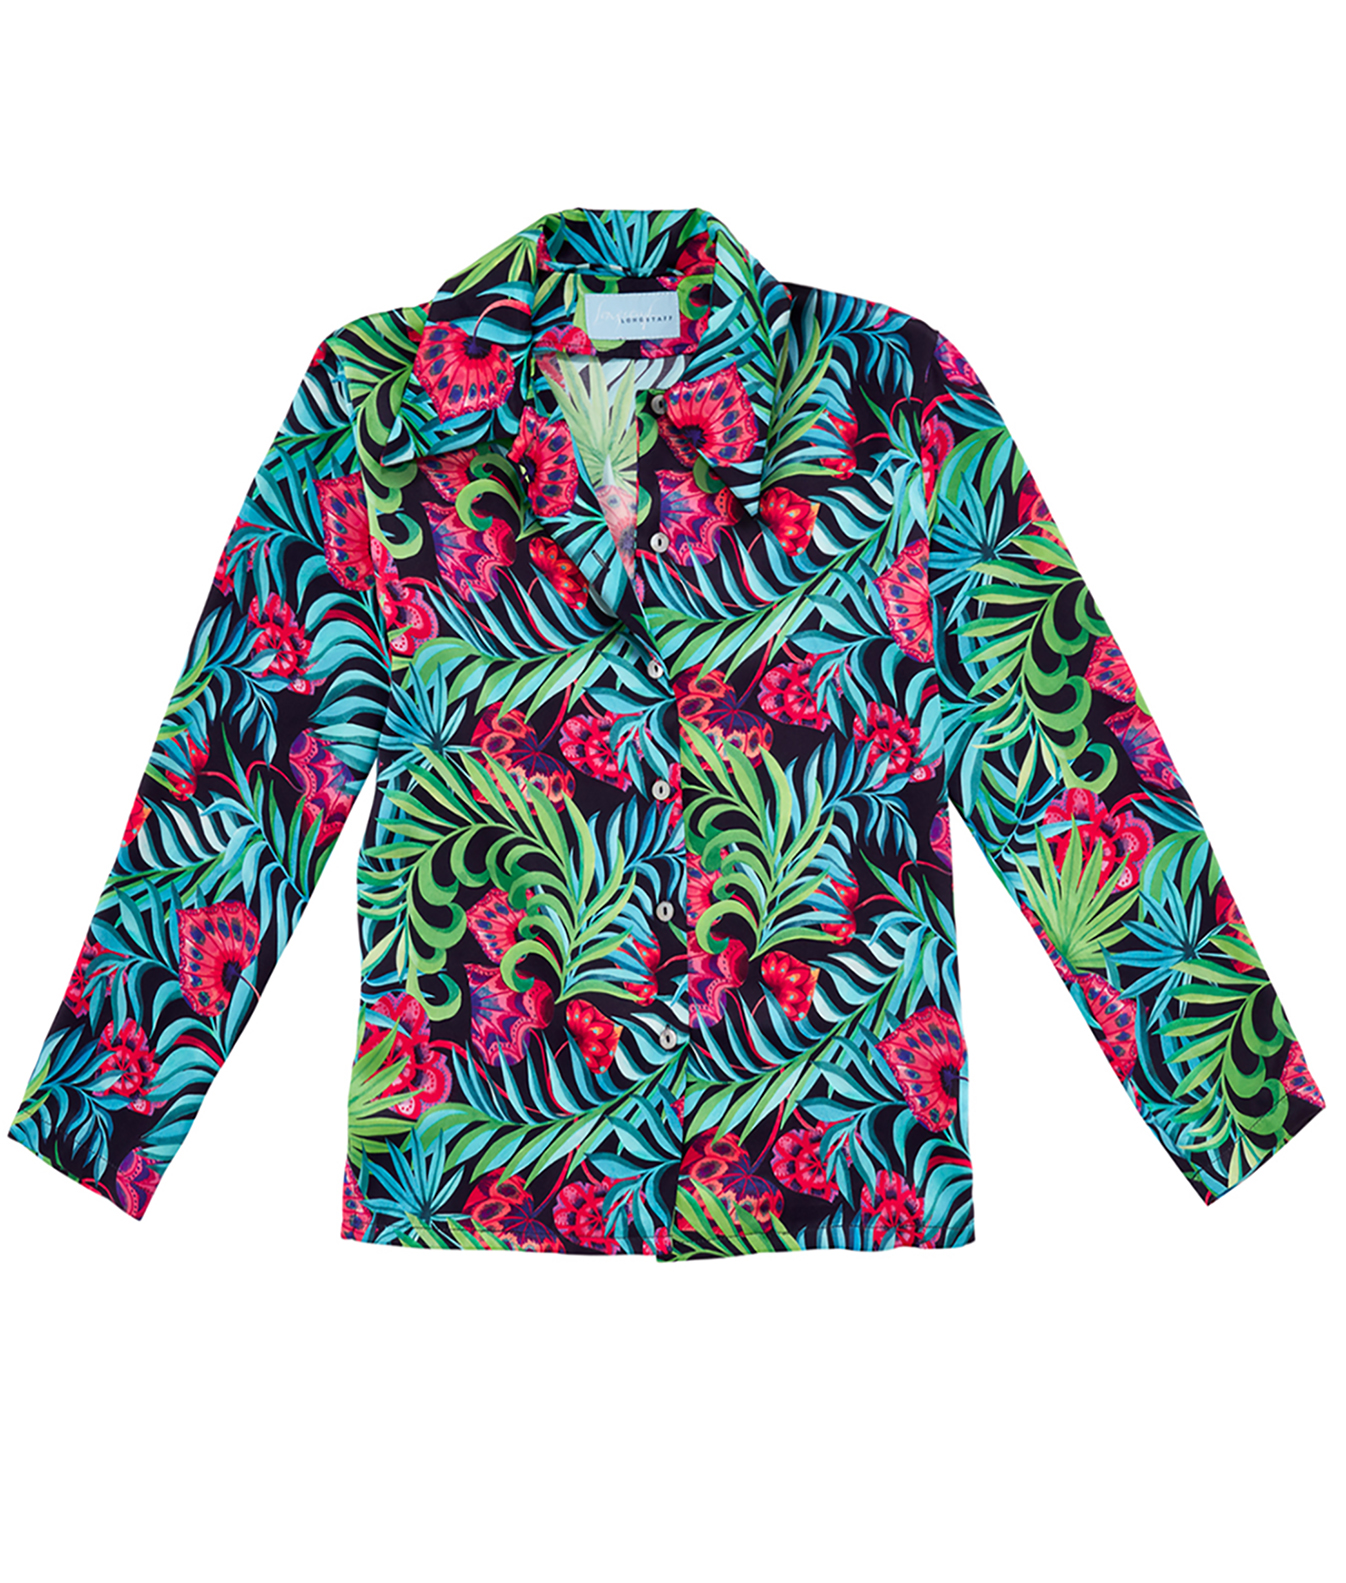 Longstaff Longstaff, Sophie Barnard, Made in England, designer, couture, silk, pyjamas, pyjama top, glass hearts, jungle, tropical